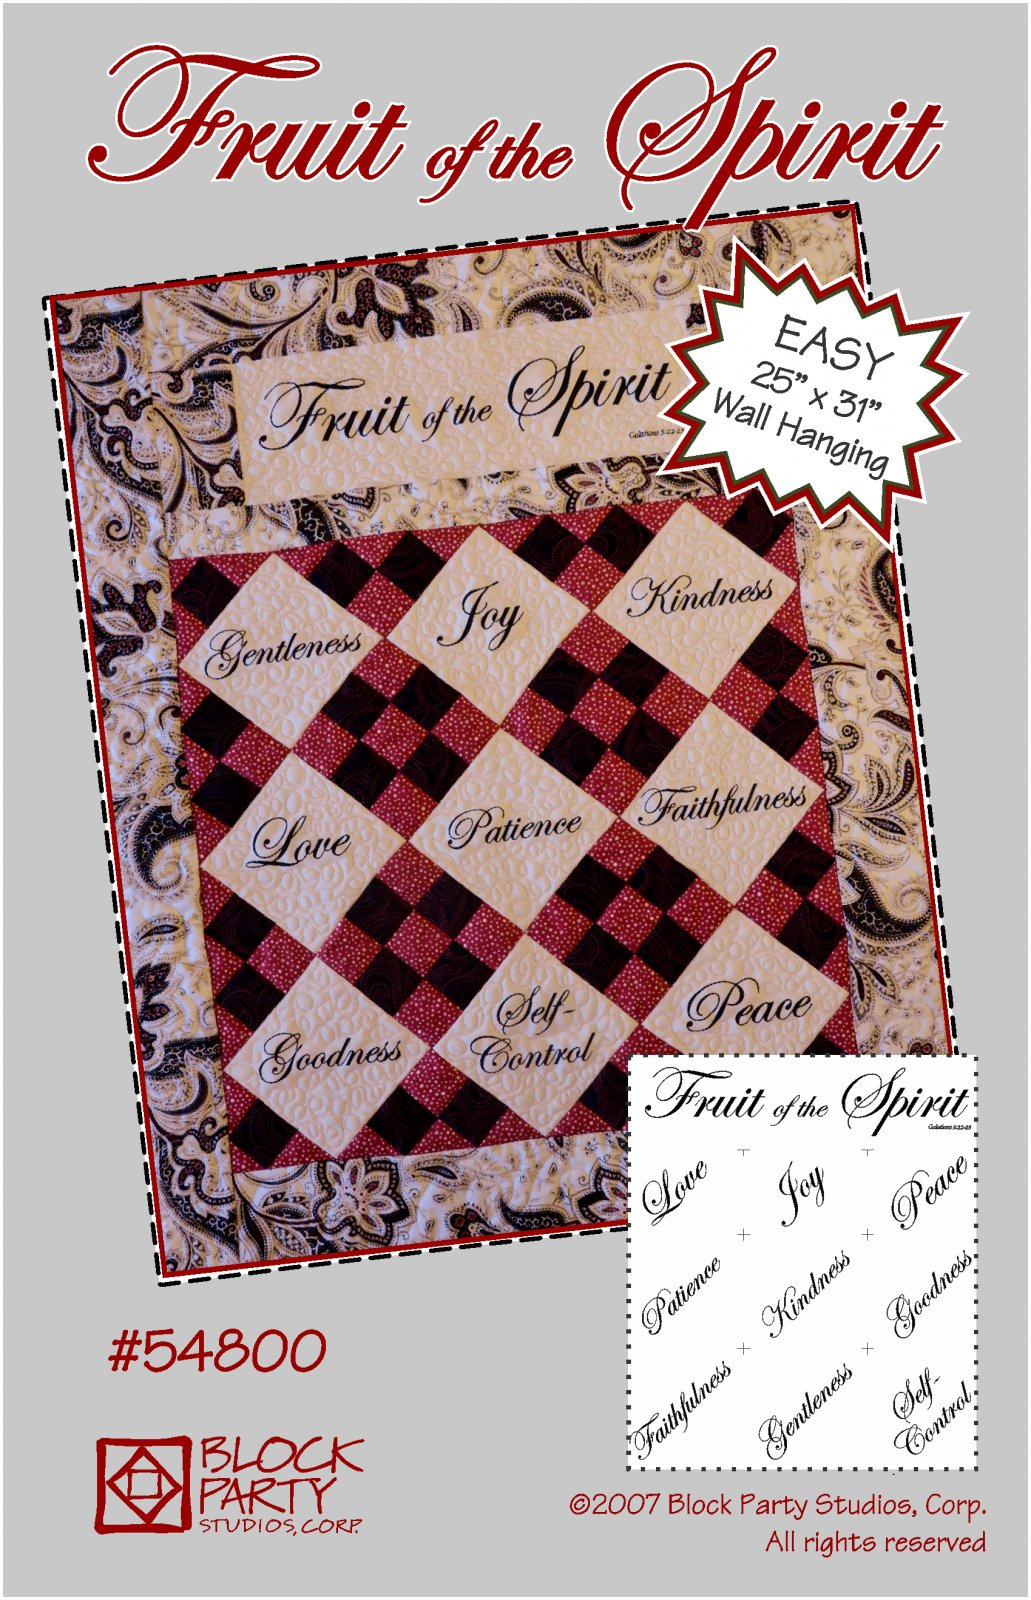 Fruit of the Spirit Quilt Pattern and Panel